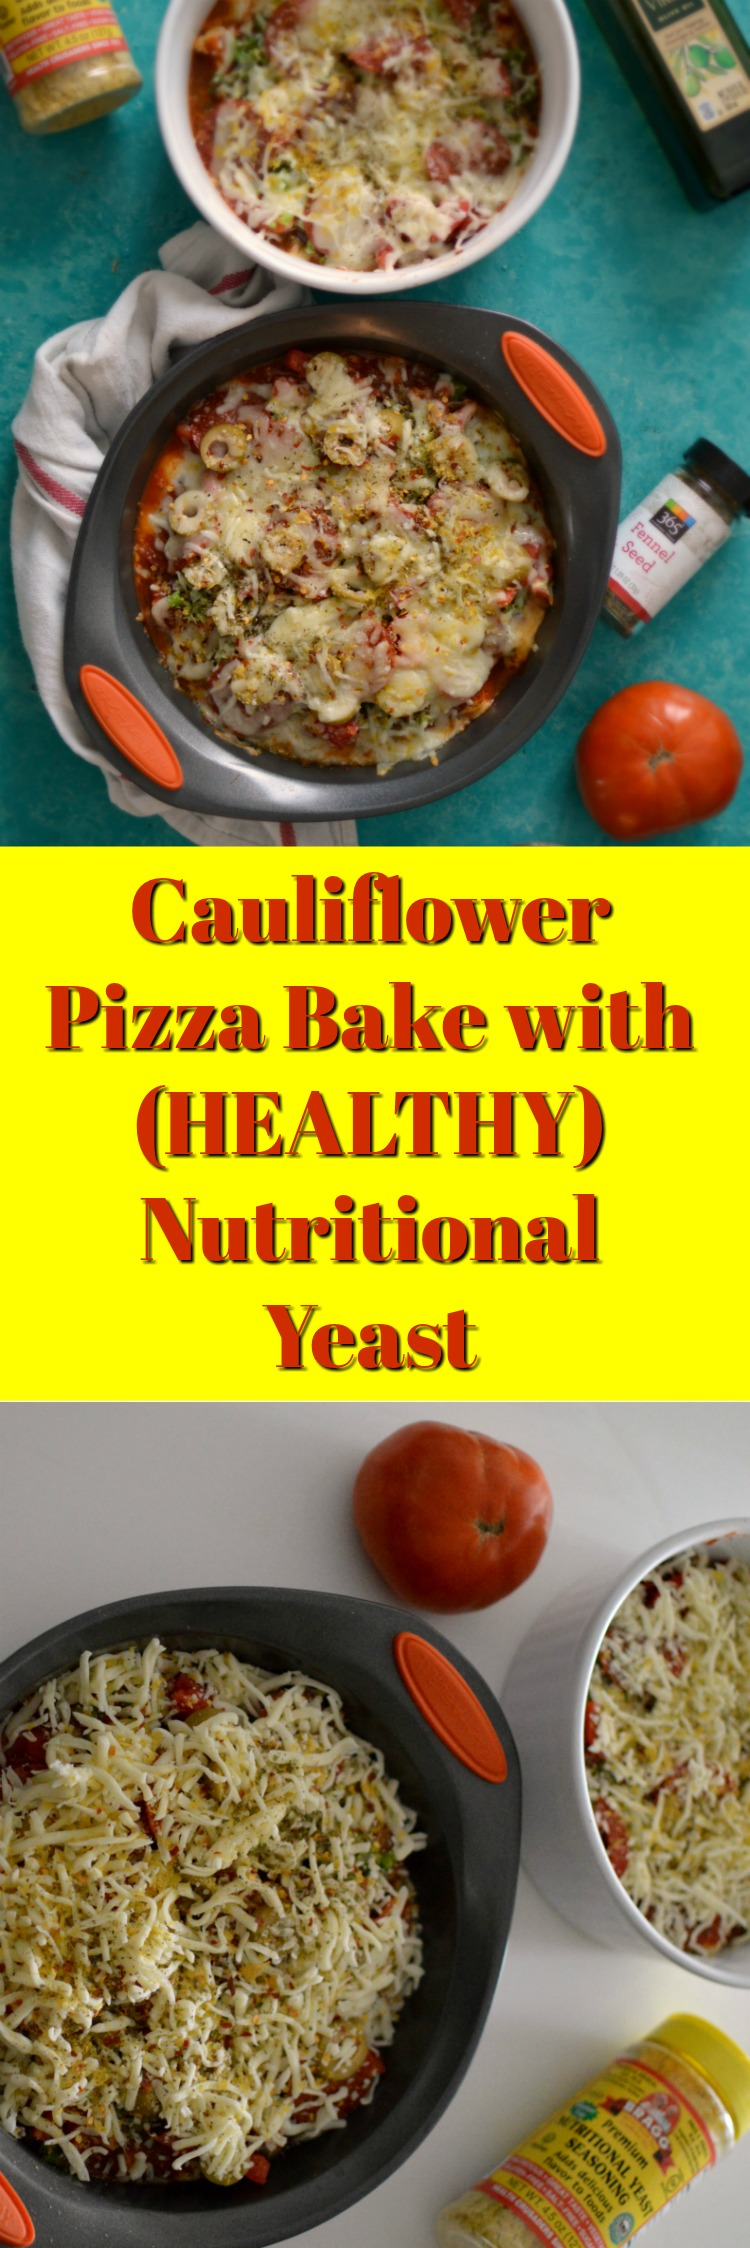 Oh, yes, all the pizza flavor minus the high carbs! You will LOVE thisClean Eating reduced fat <strong>Cauliflower Pizza Bake with (HEALTHY) Nutritional Yeast</strong>! A one pan simple saucy treat you can actually prepare in under 30 minutes for two. An AWESOME low carb lunch or dinner.